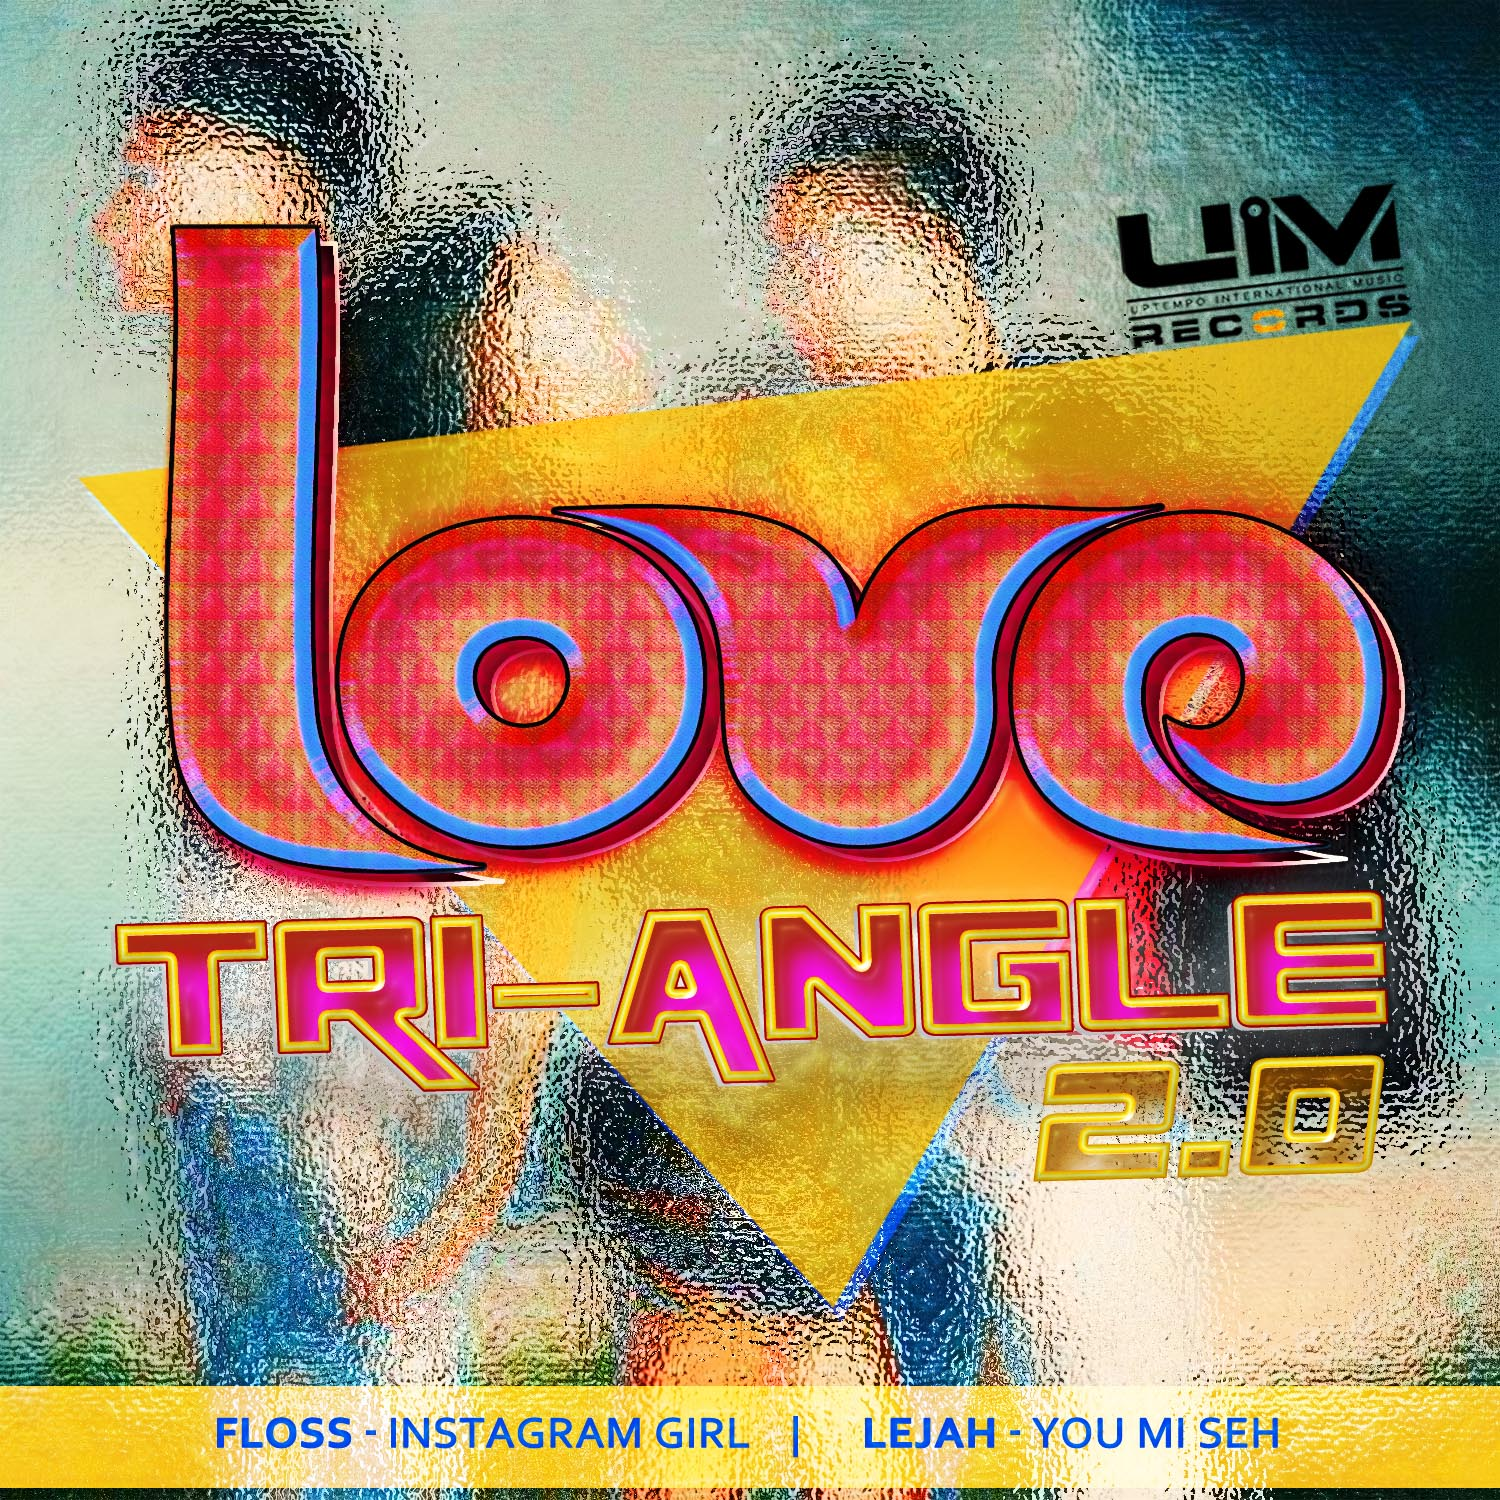 LOVE-TRI-ANGLE-2.0-RIDDIM-UIM-RECORDS-cOVER